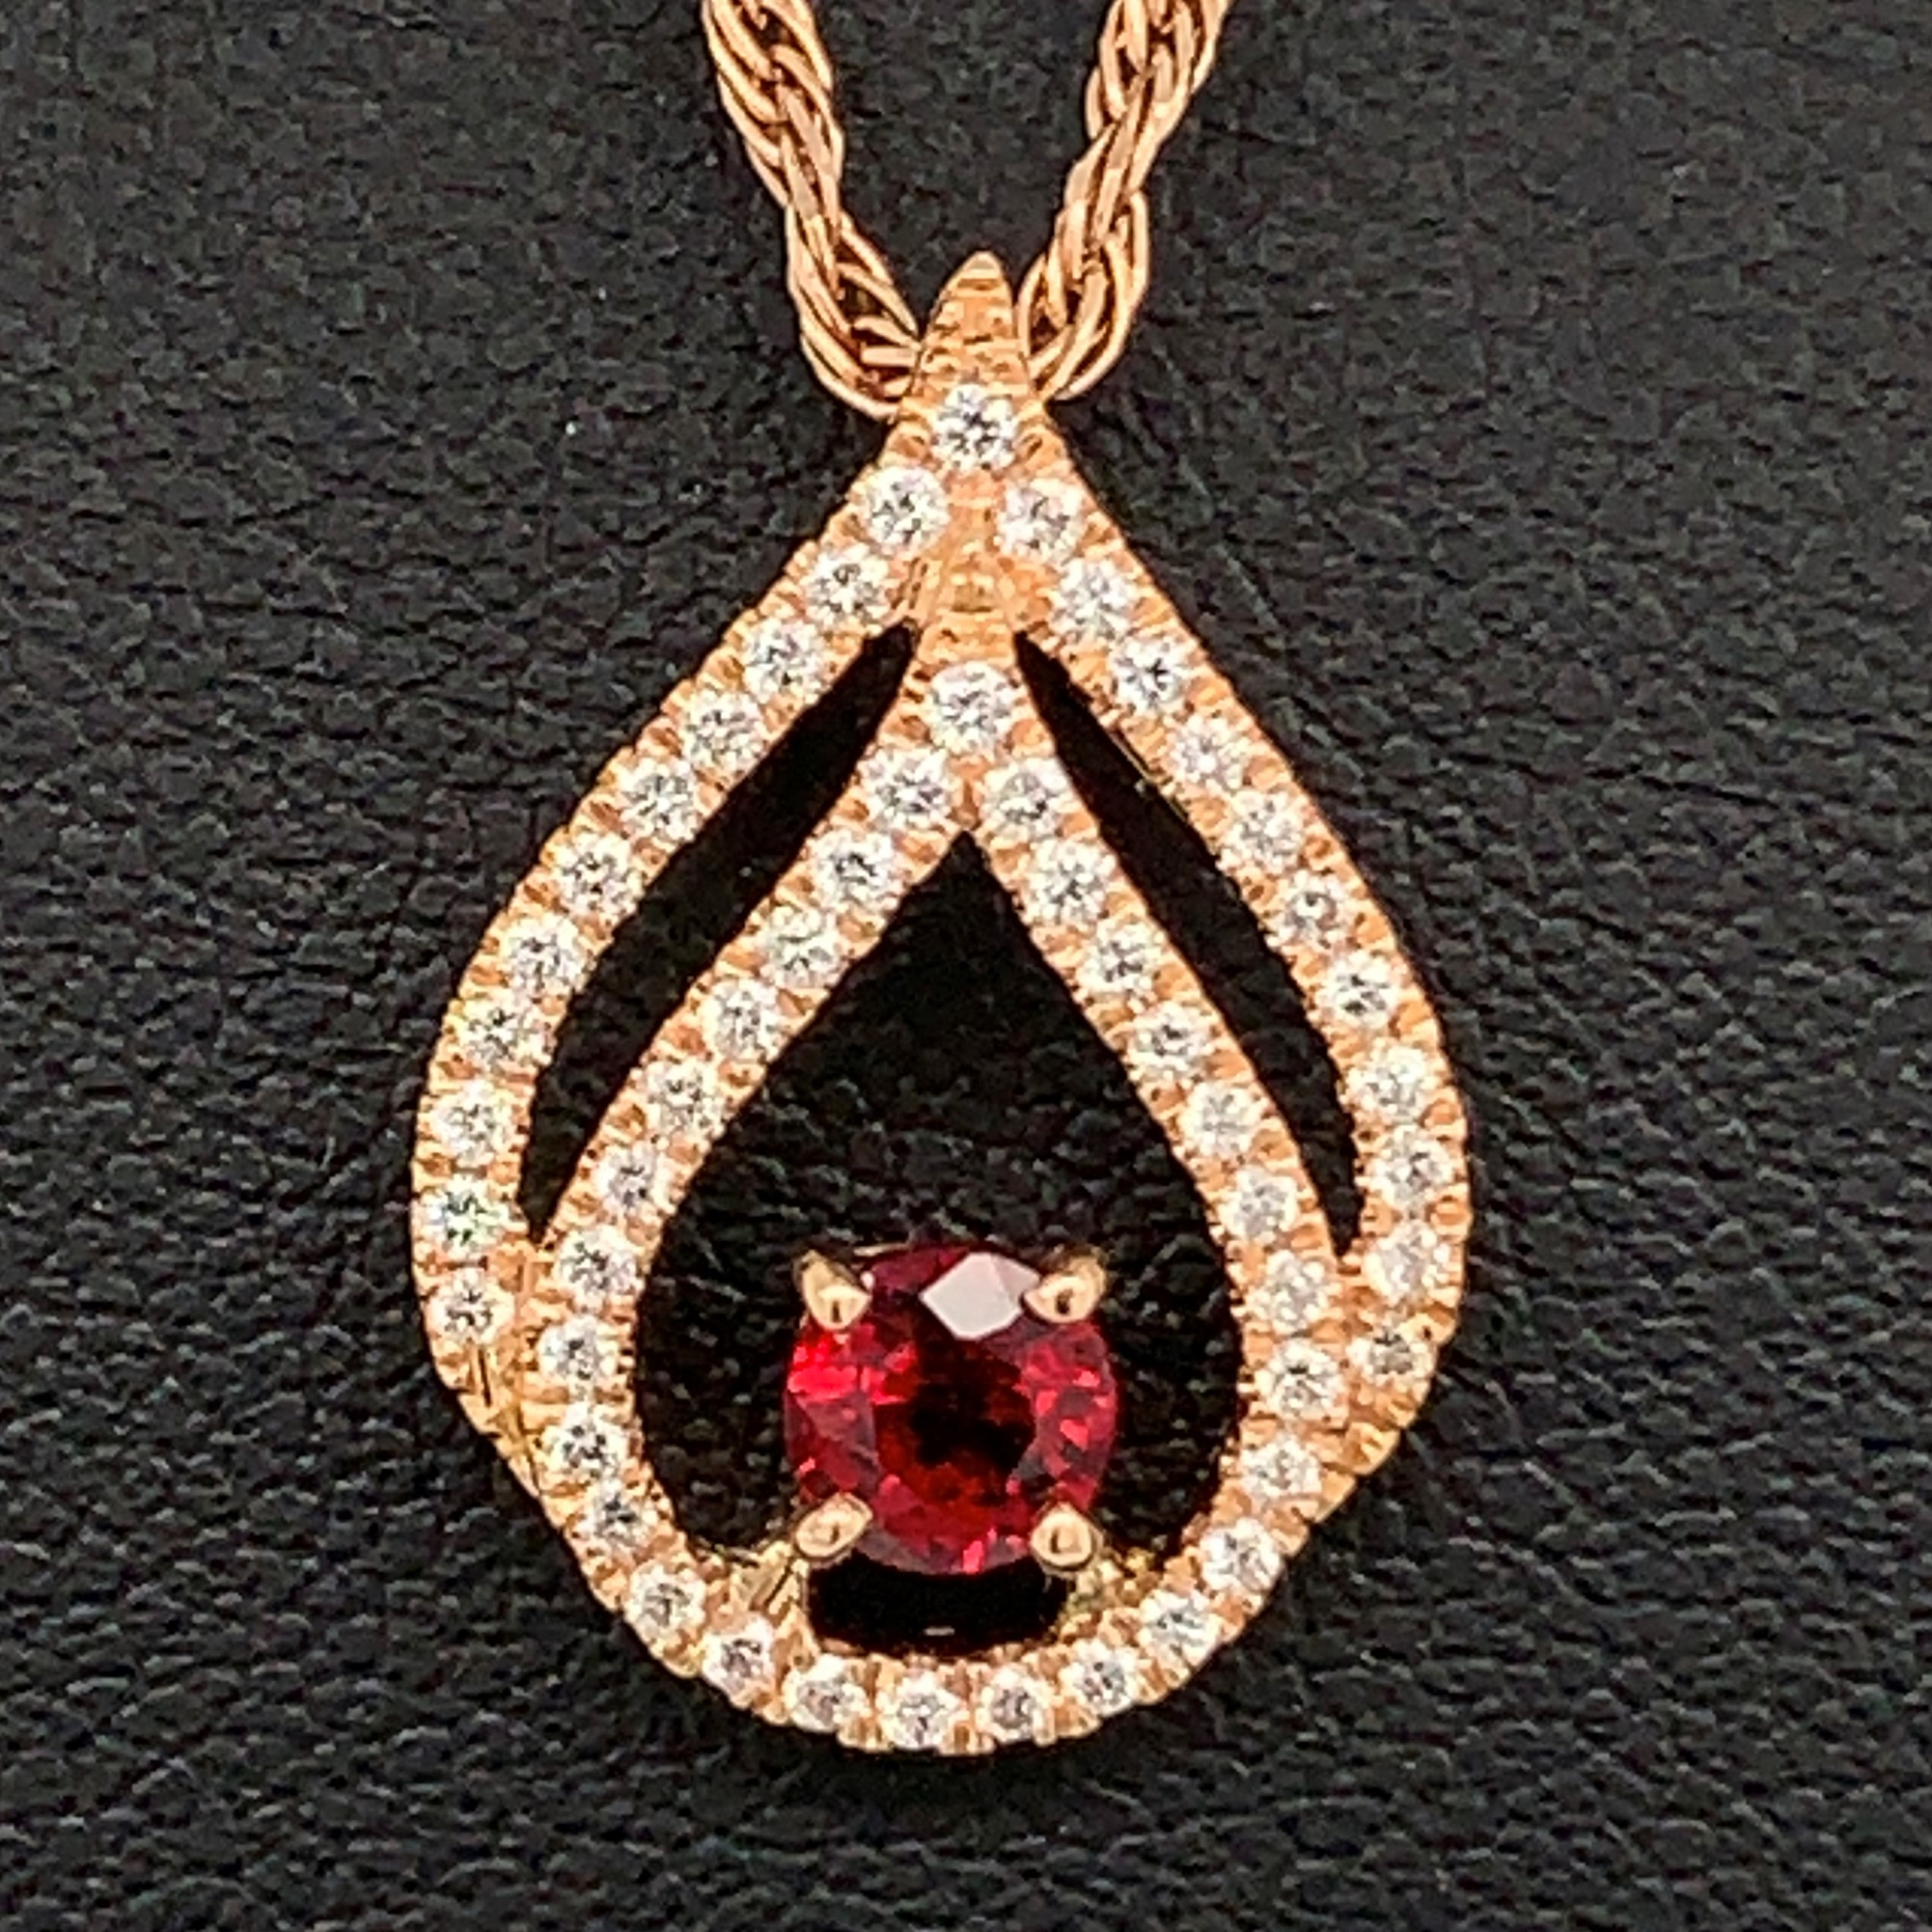 Fire Ruby and Diamond Pendant by Fire 🔥 Ruby